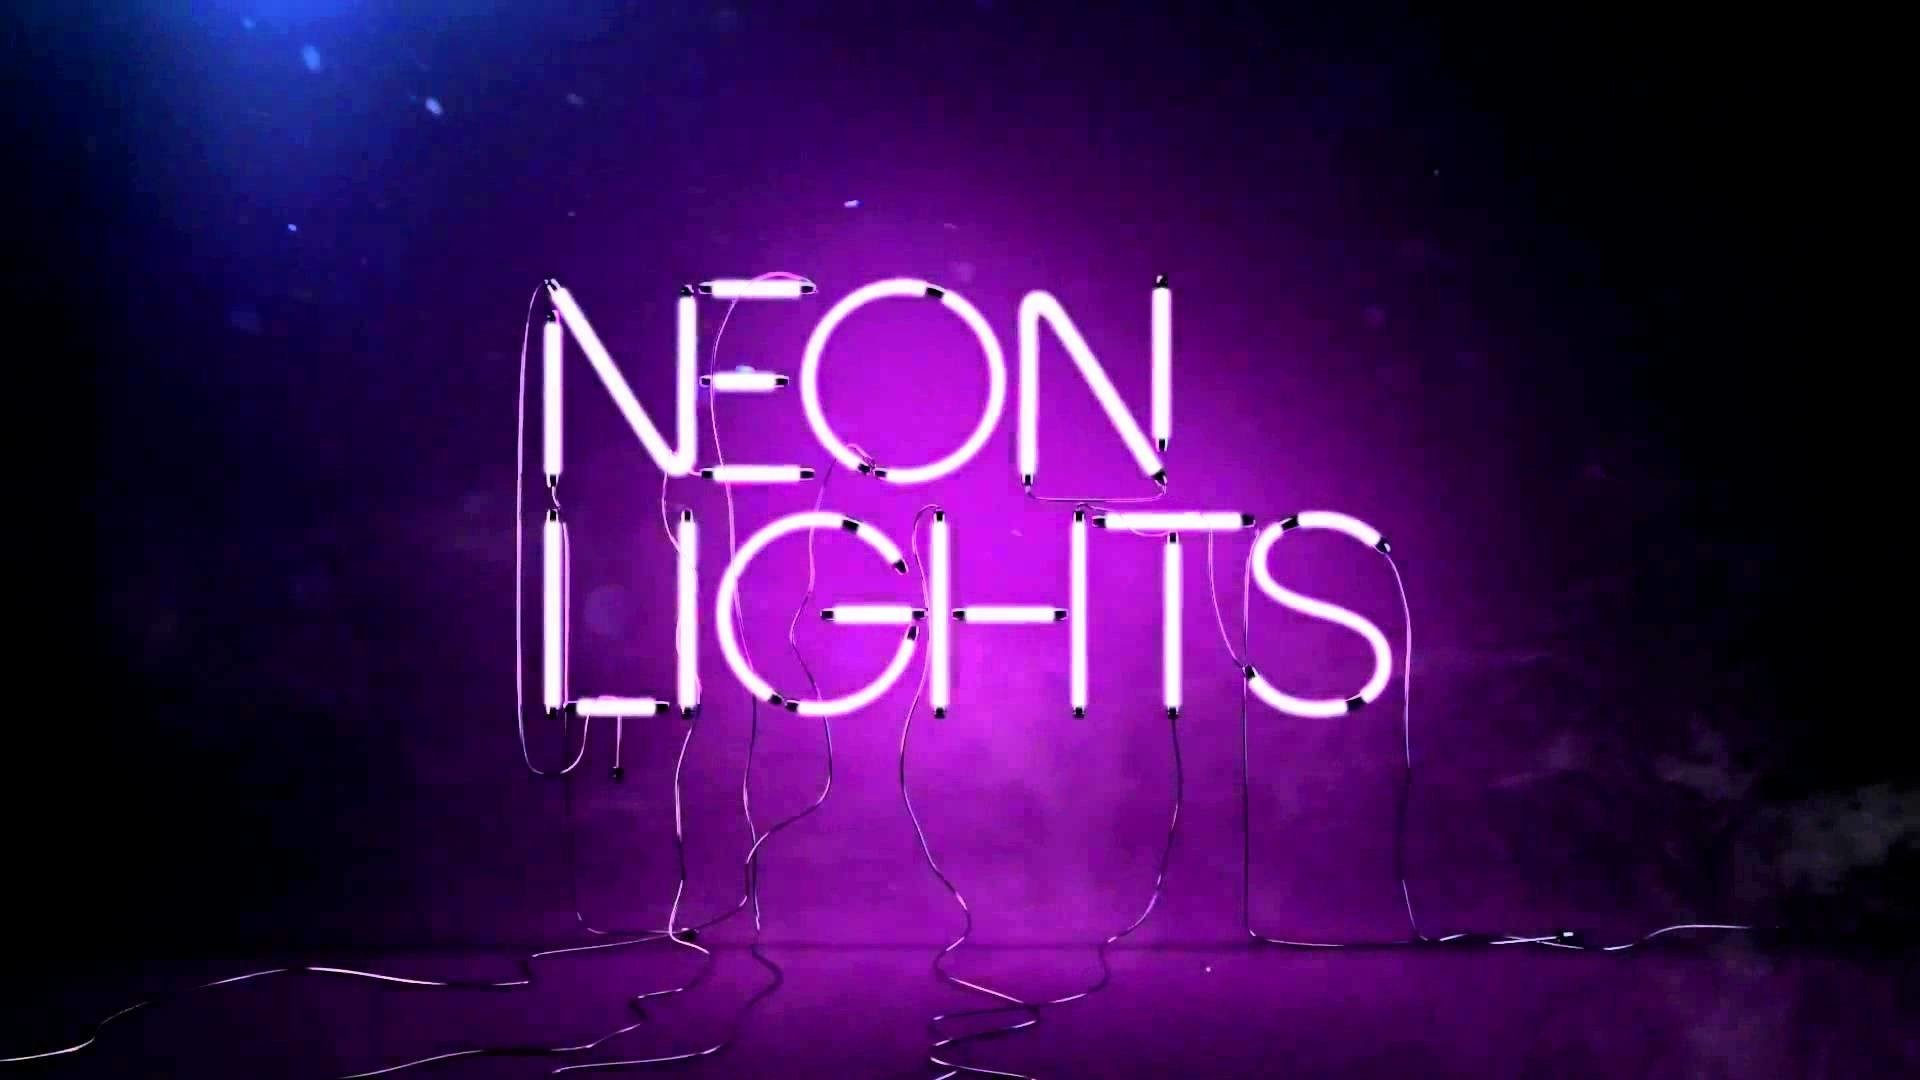 Photography – Neon Neon Sign Wallpaper